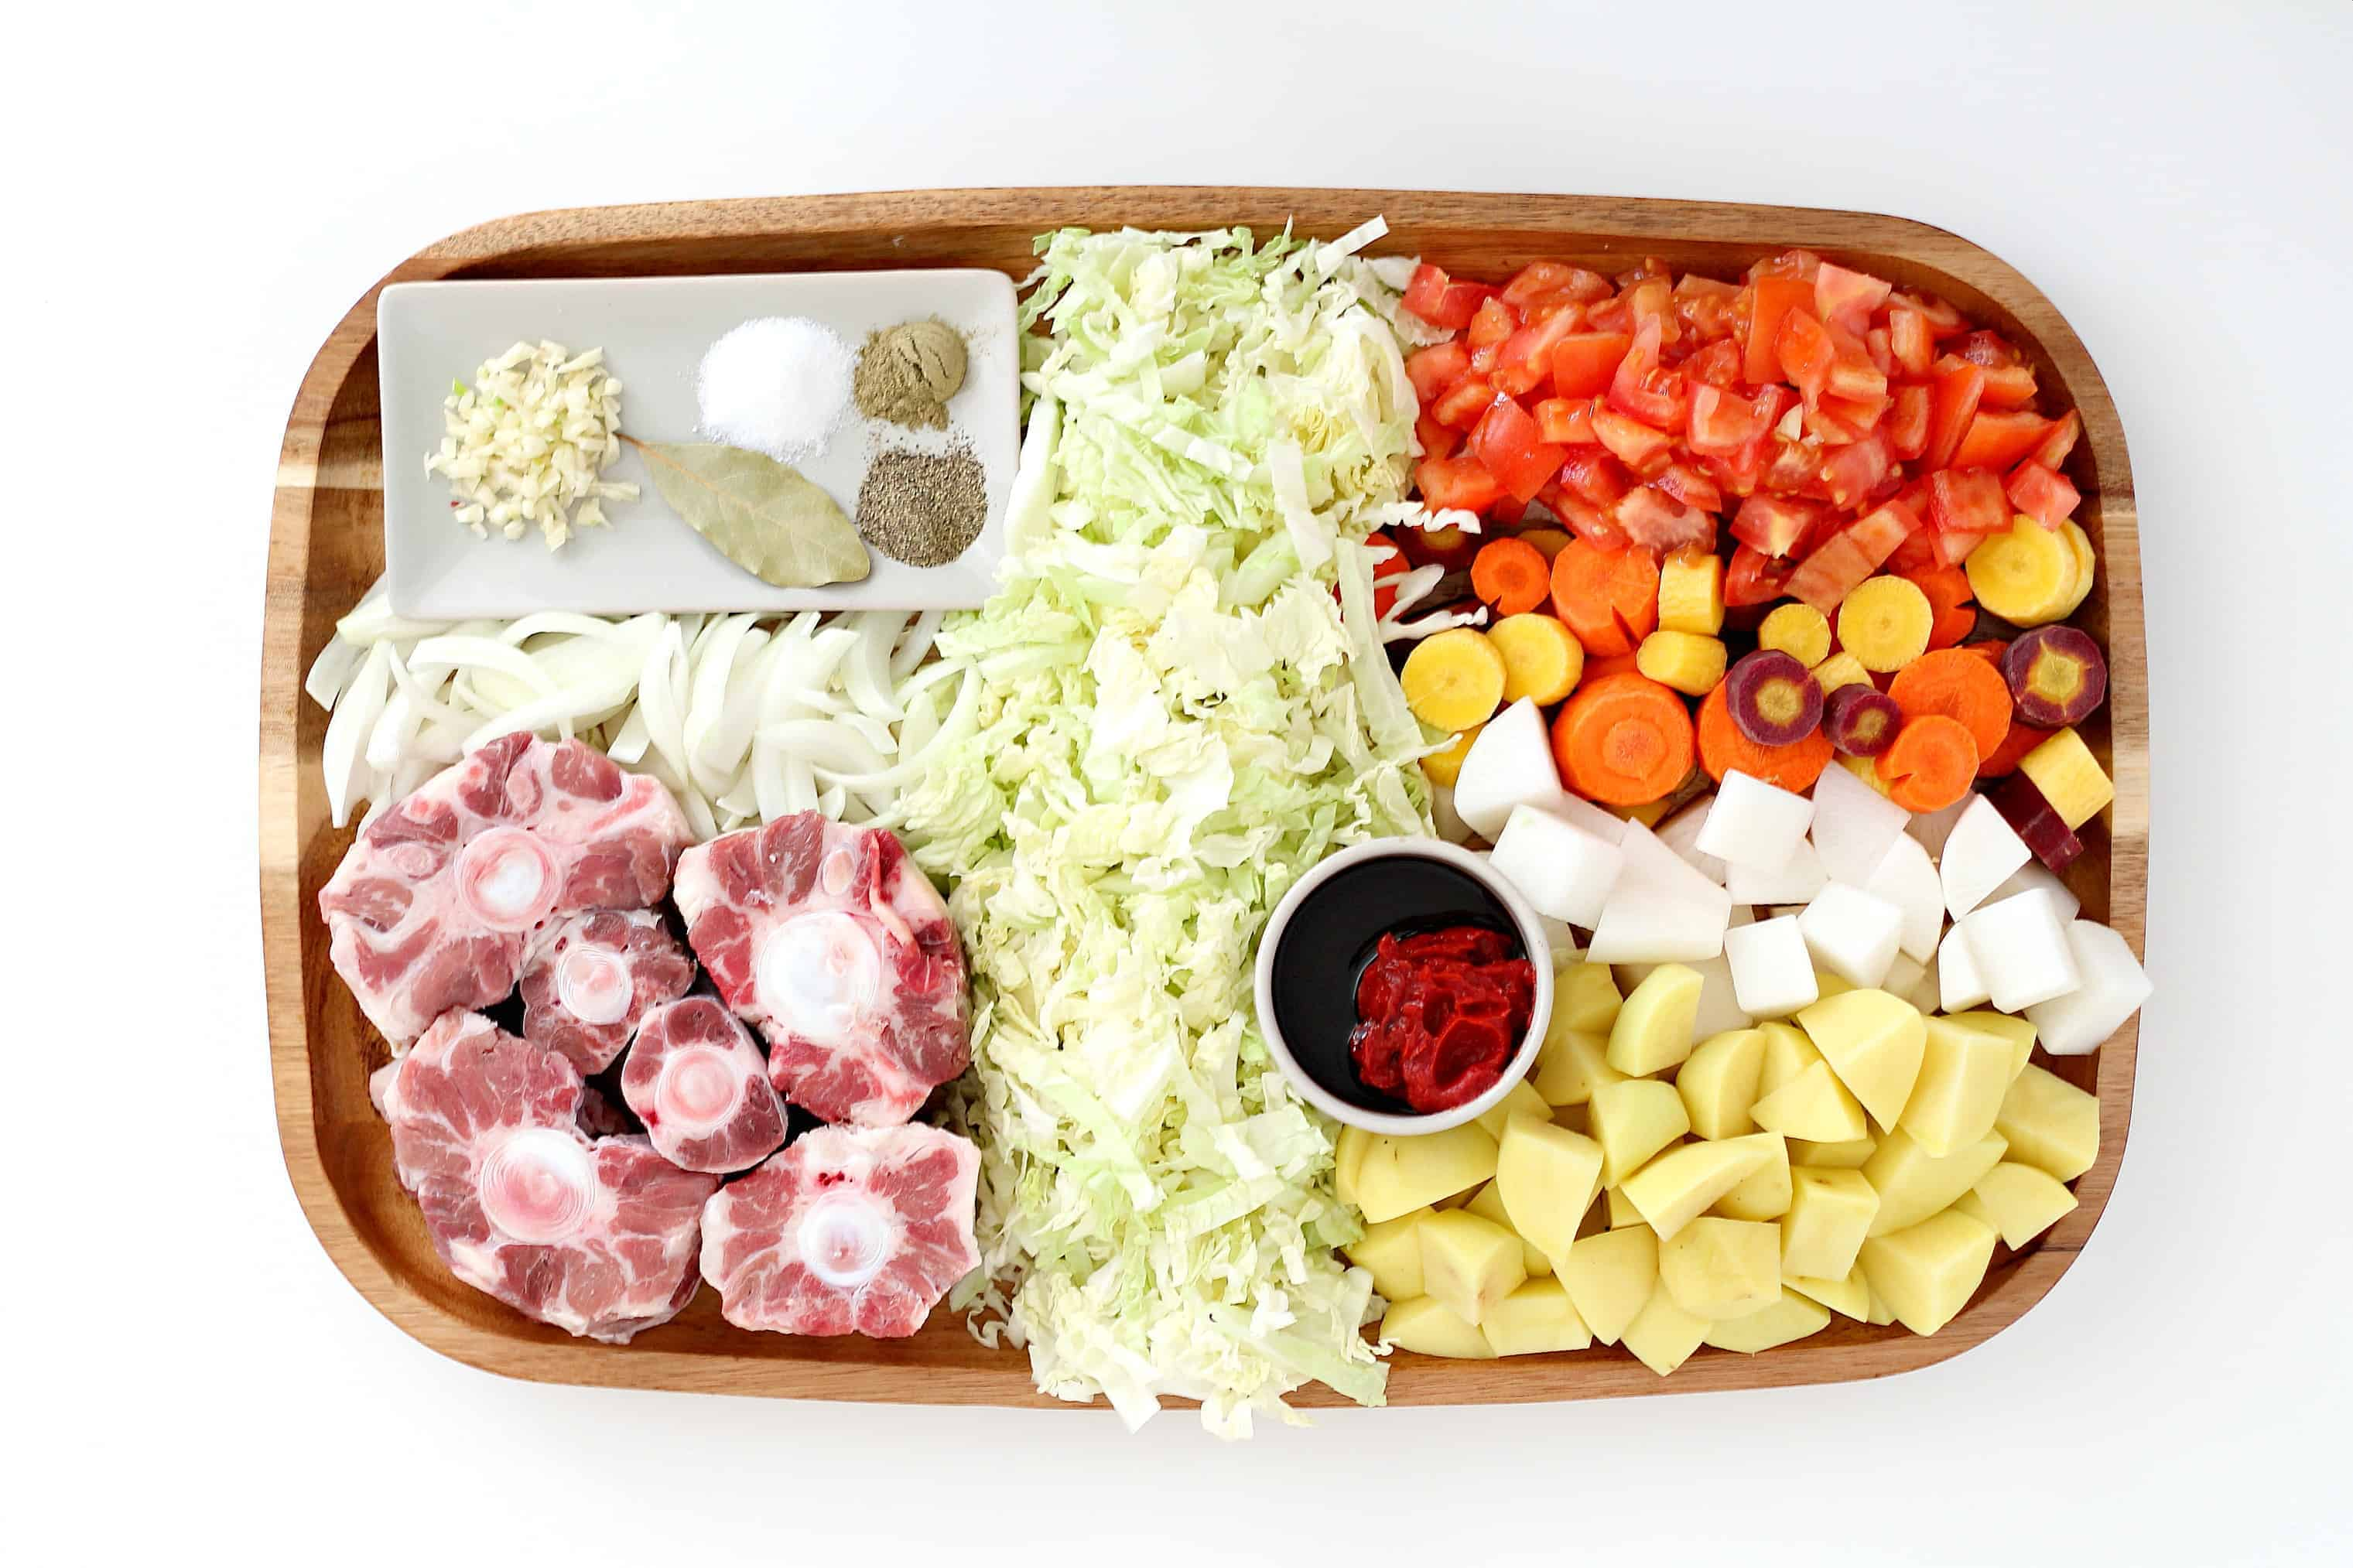 Flat lay of oxtail soup ingredients